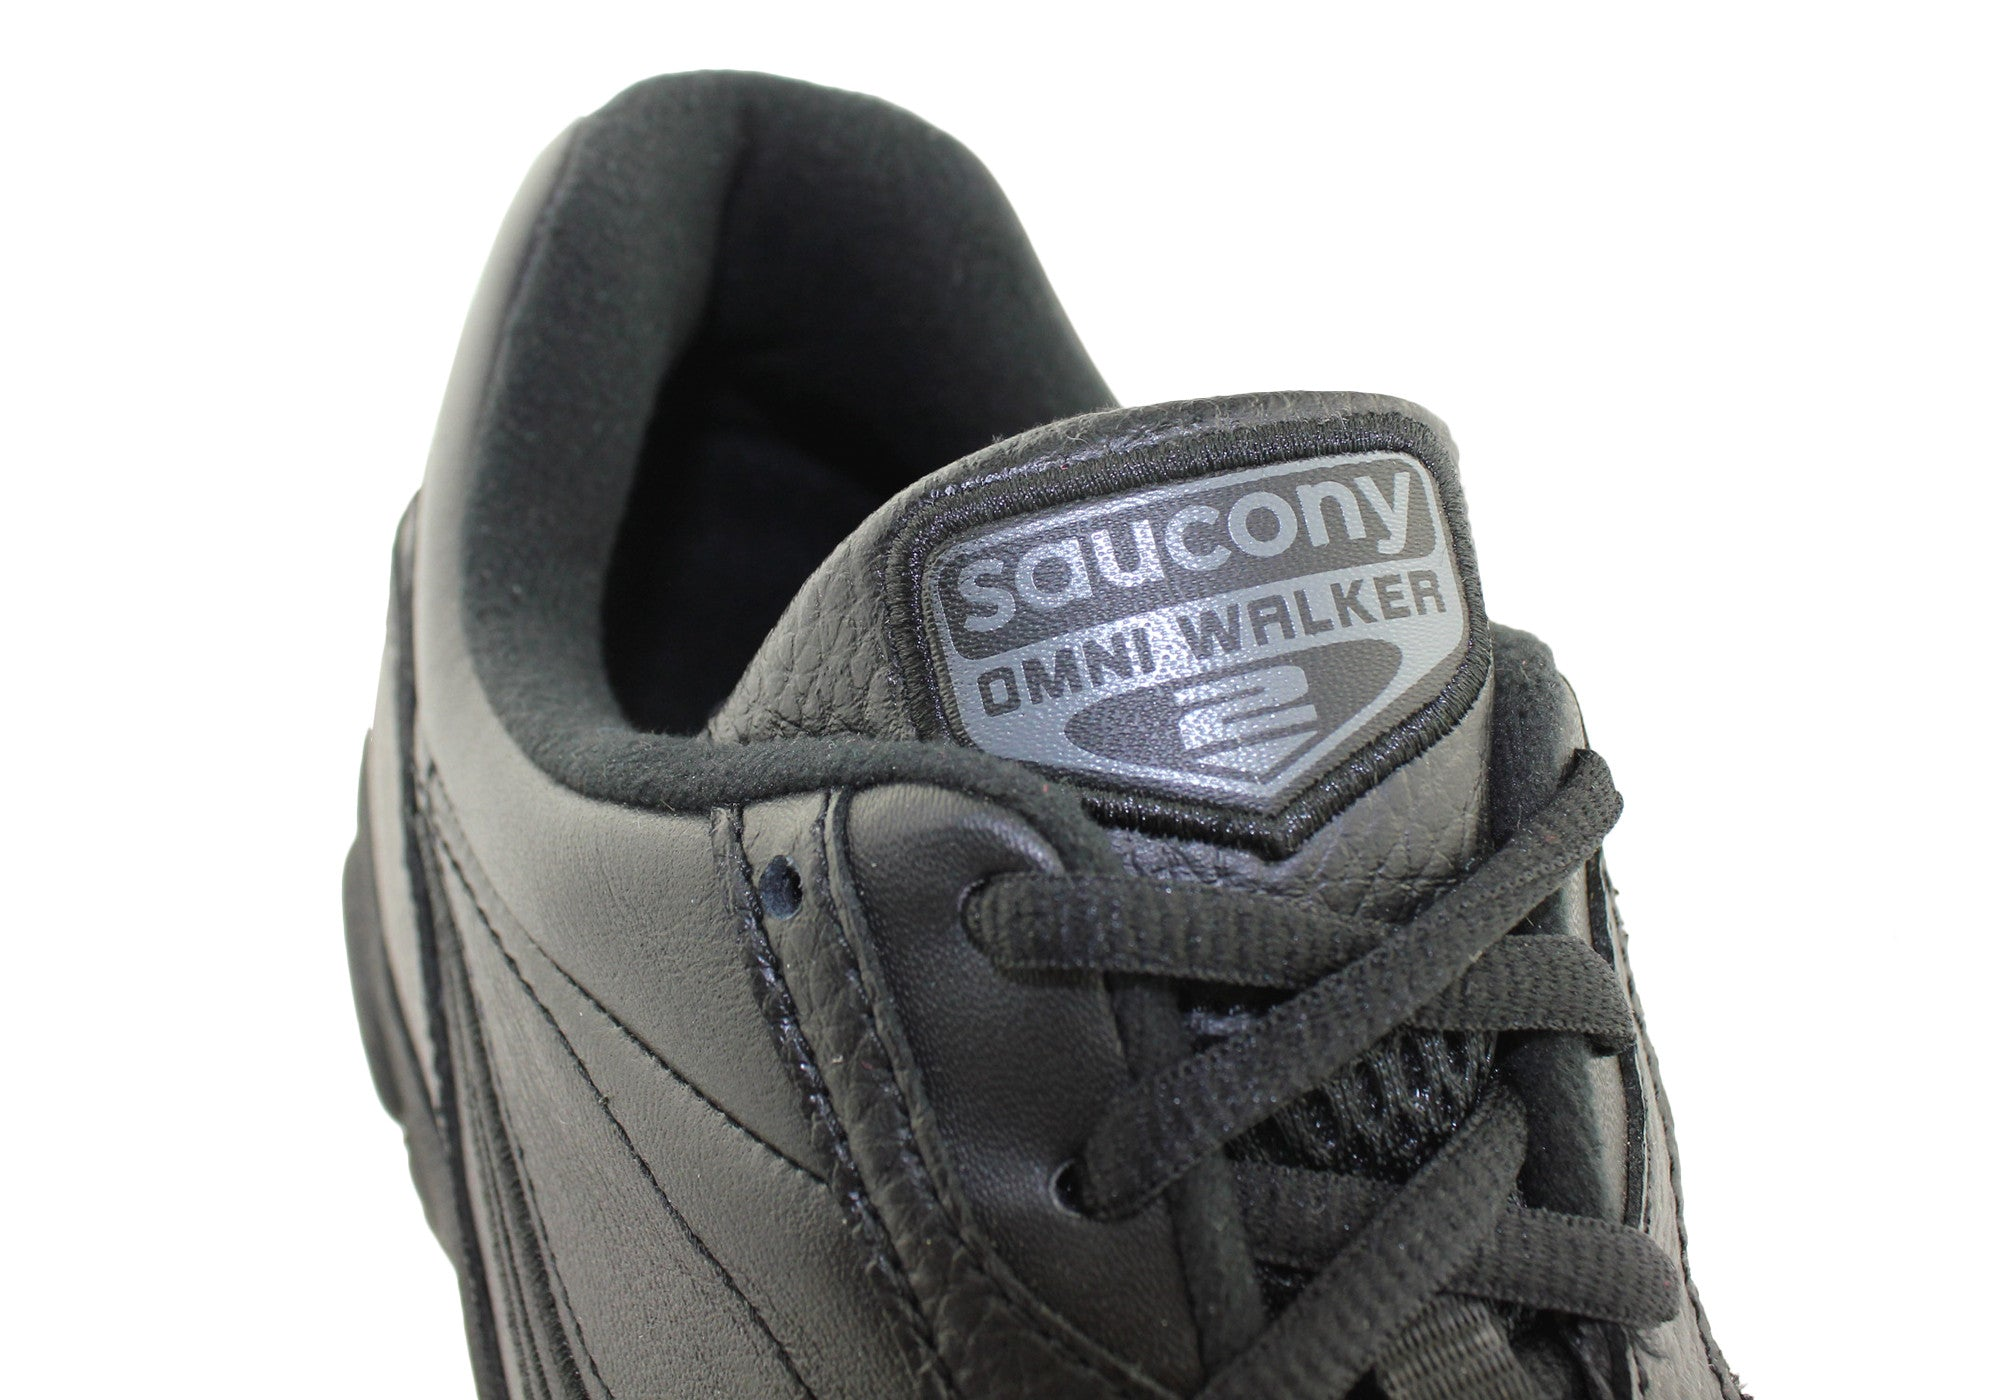 Saucony Omni Walker 2 Mens Wide Fit Leather Shoes